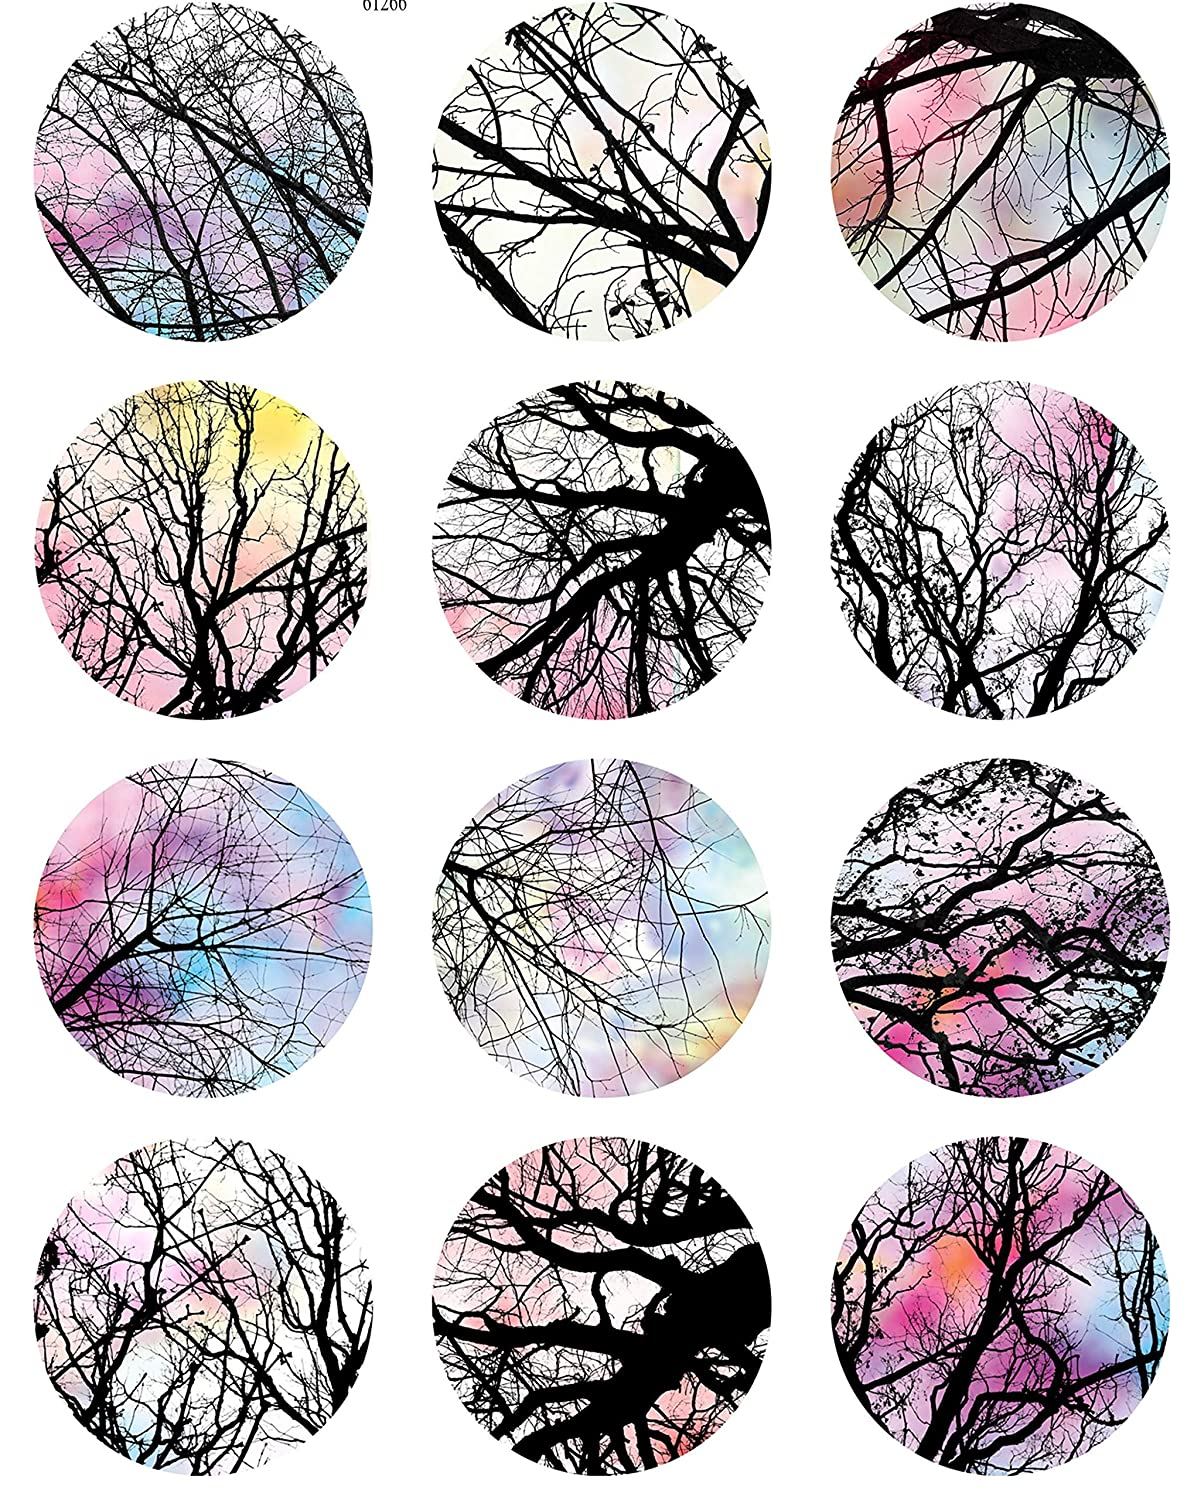 Images Enamel 3 Different Size Sheet Enamel Decal Choose Either Ceramic Ceramic Decal Bare Trees of Winter Waterslide Decal to Choose from Glass Decal 61266 or Glass Fusing Decals